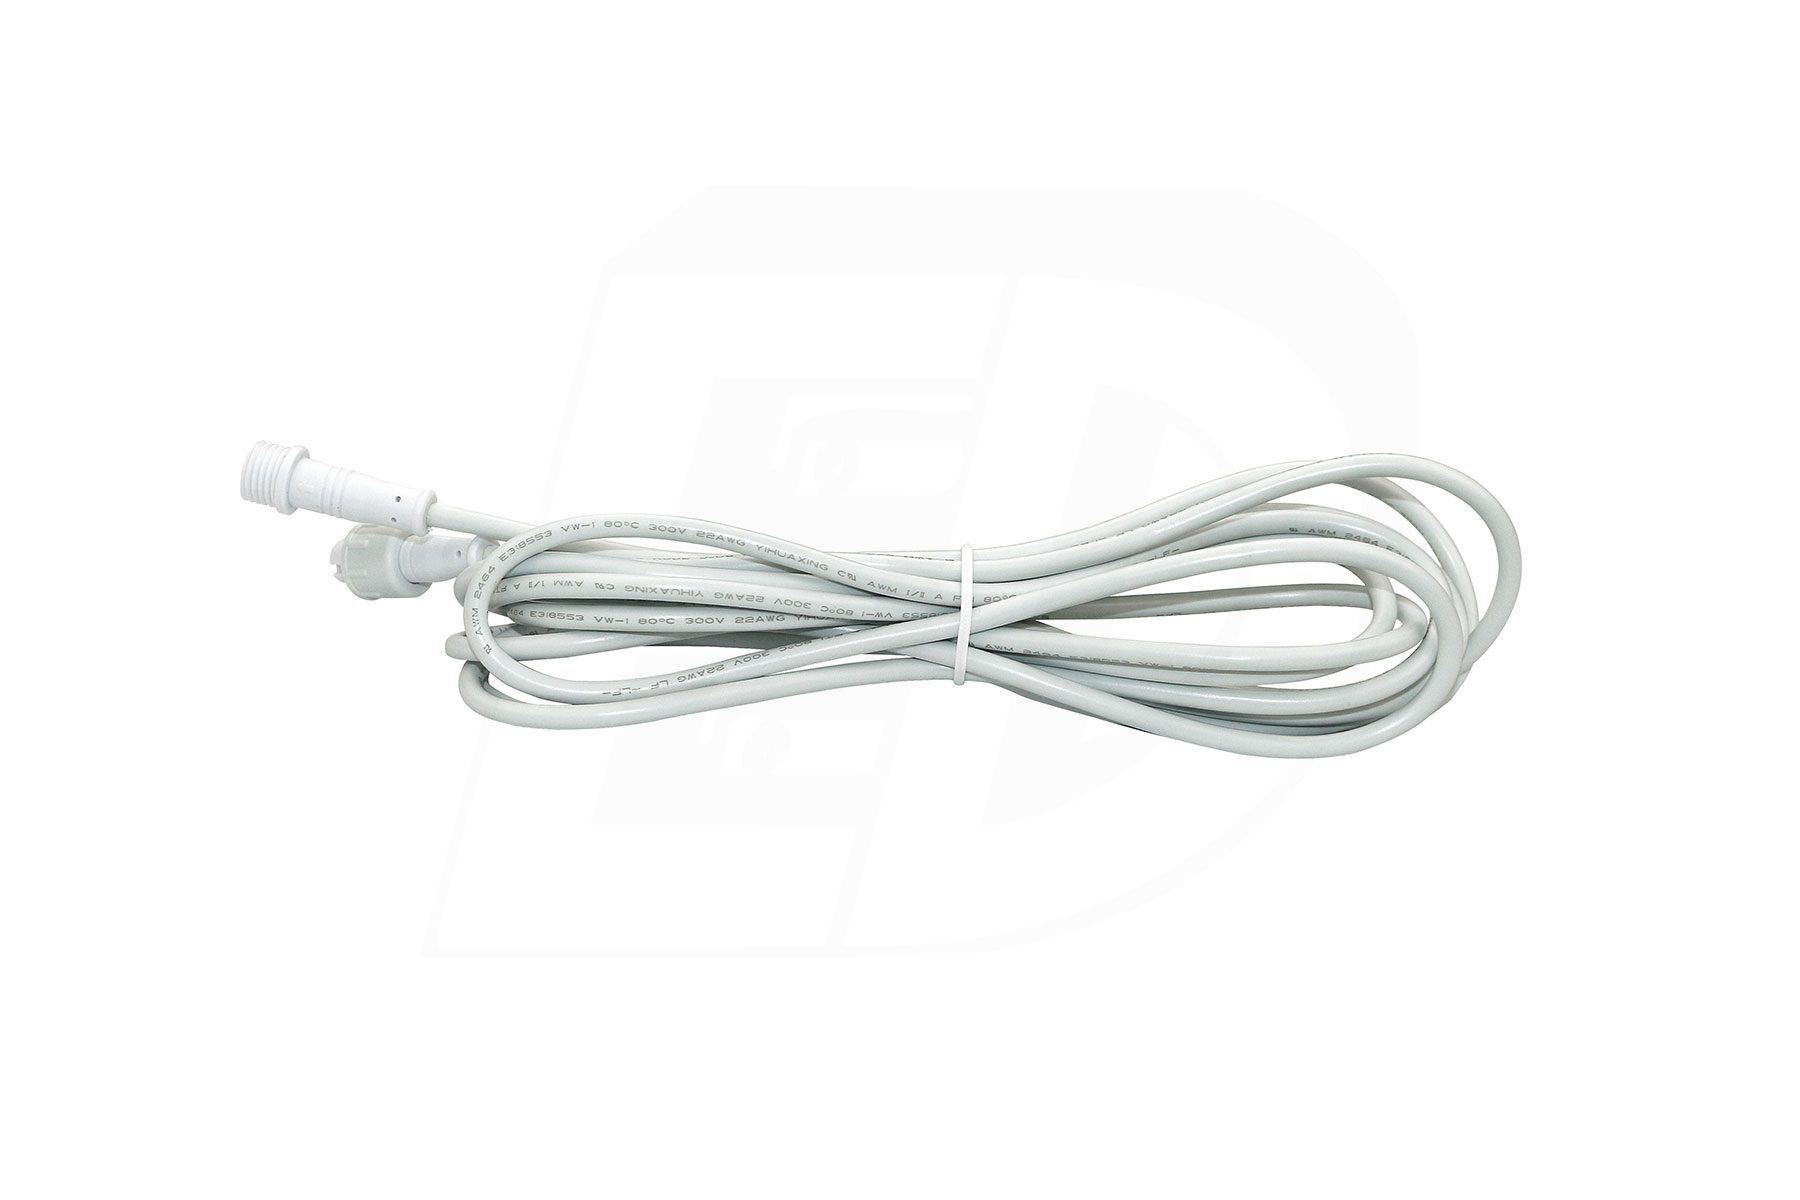 240″ Long Extension Cord for DLSG 3 Inch. Round and Square LED Gimbal Recessed Light / DLRB 2 Inch. Round and Square LED Baffle Recessed Light